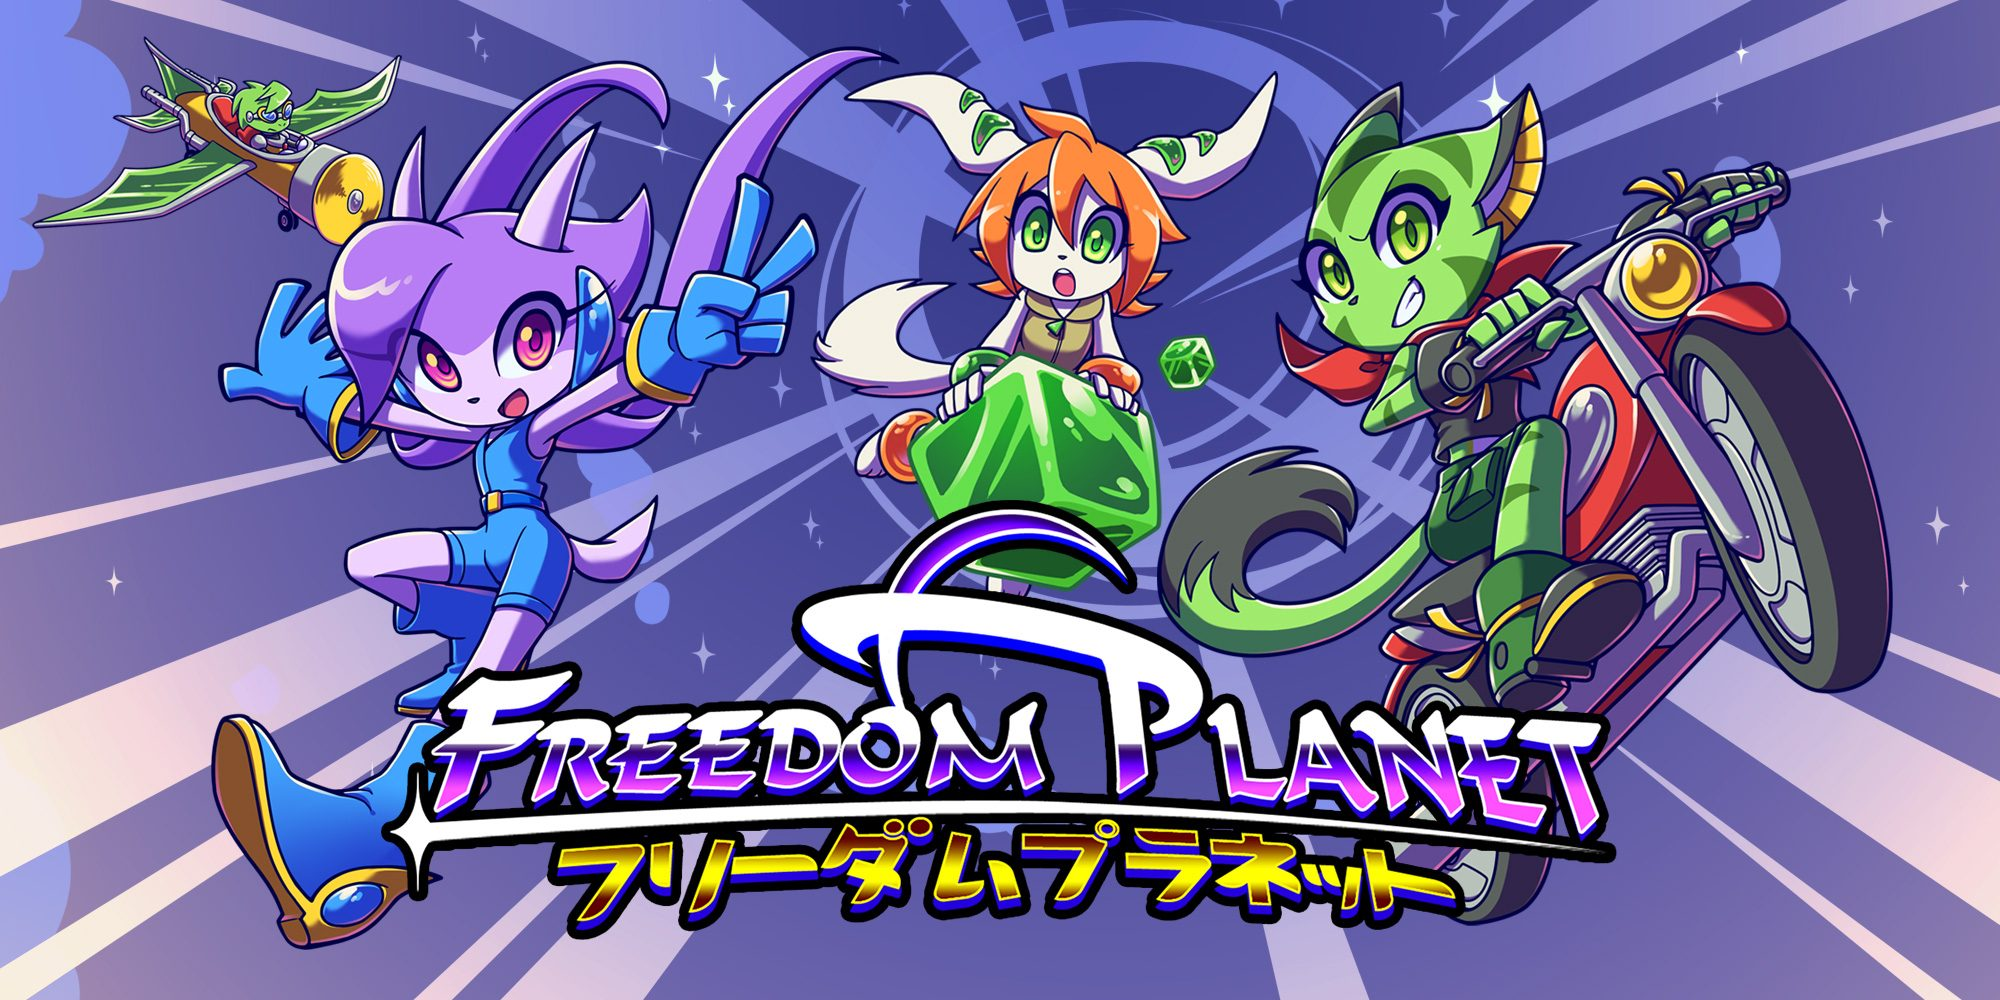 h2x1_nswitchds_freedomplanet-7868223